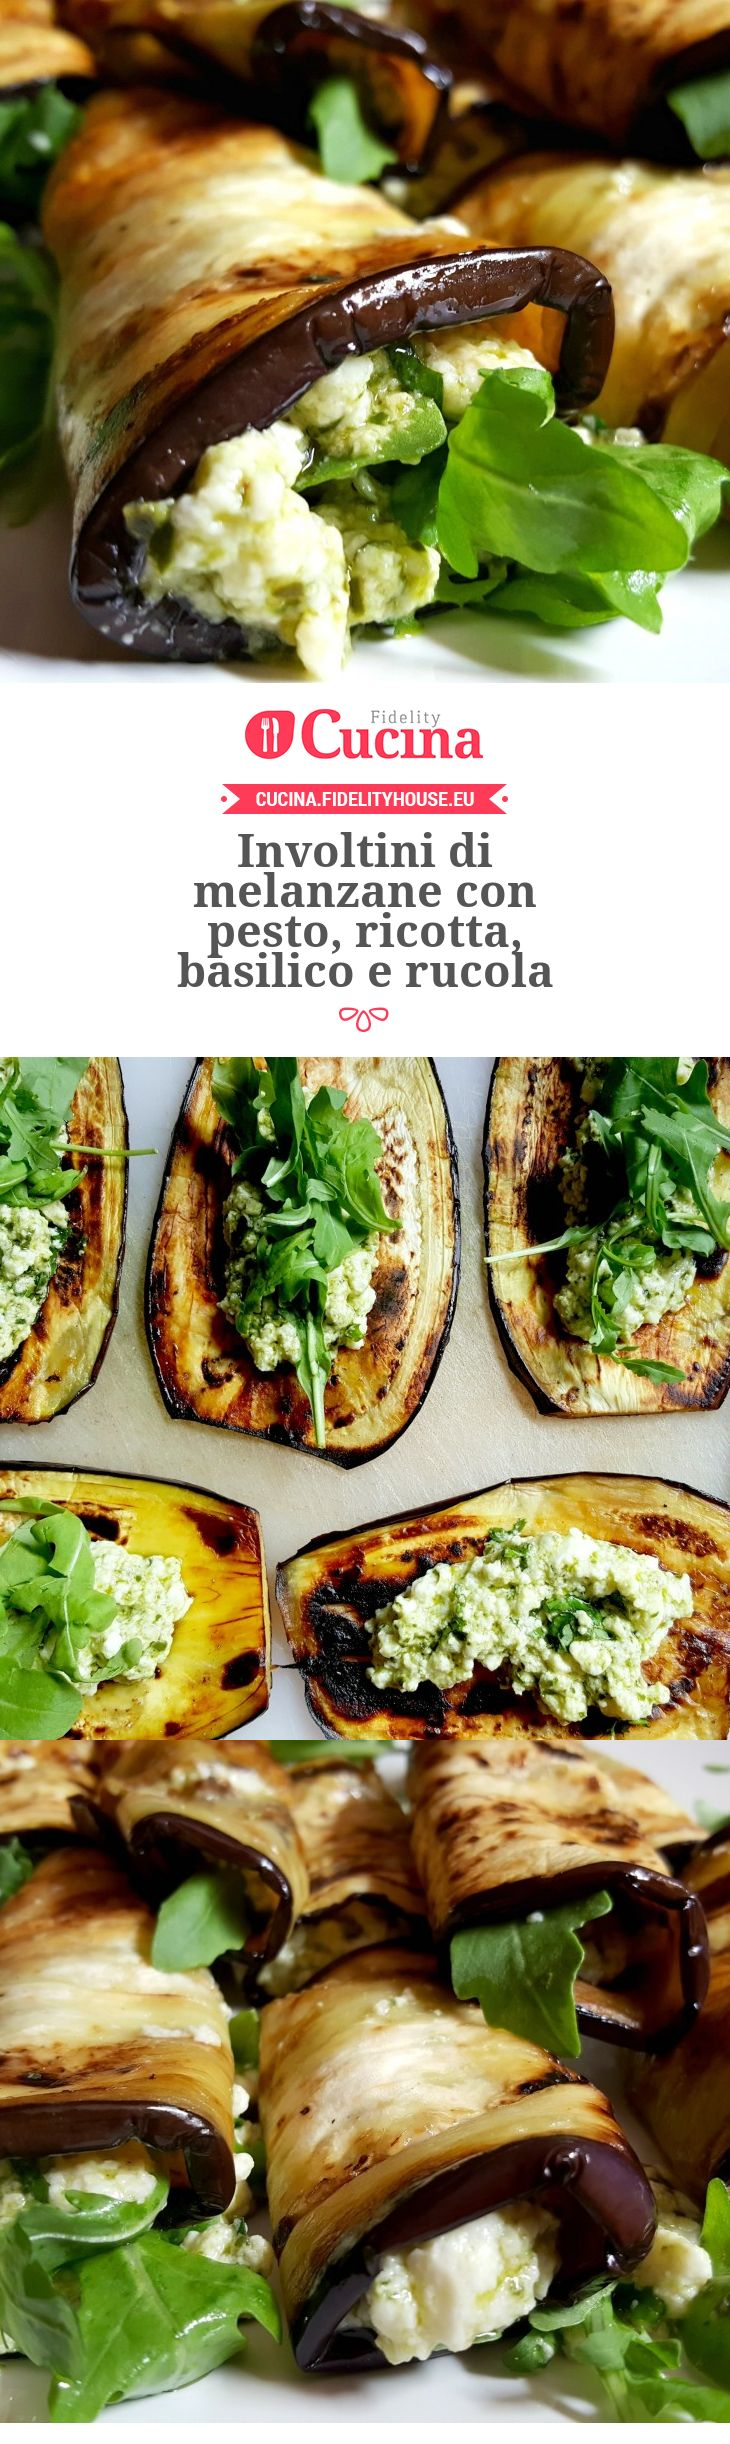 Involtini di melanzane con pesto, ricotta, basilico e rucola